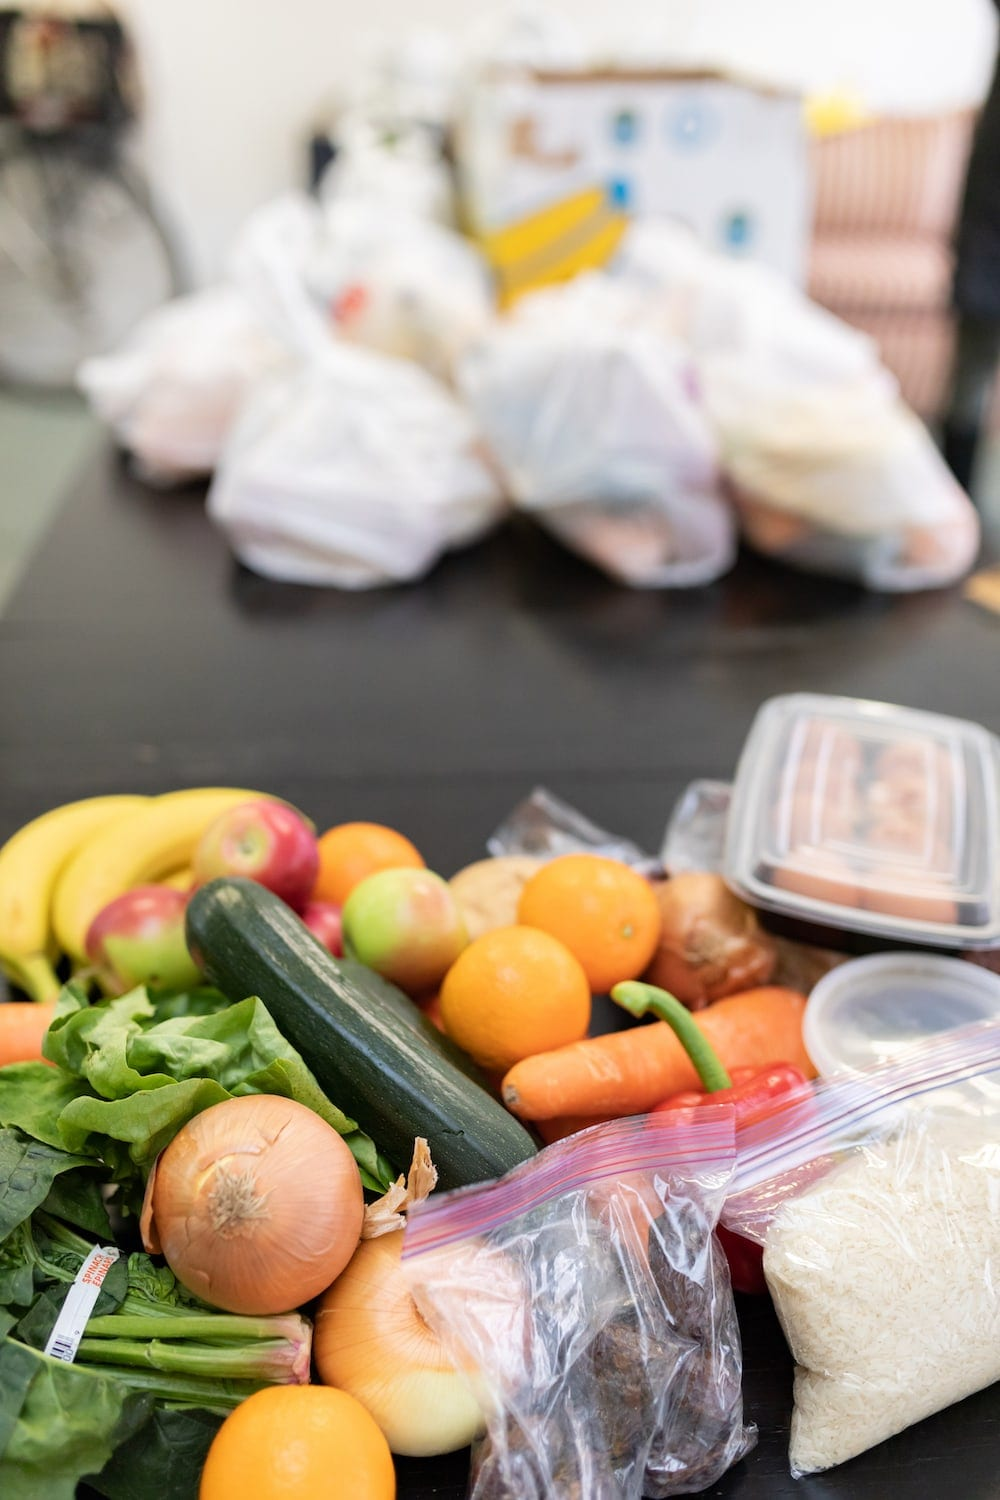 Picture of bags and fresh food